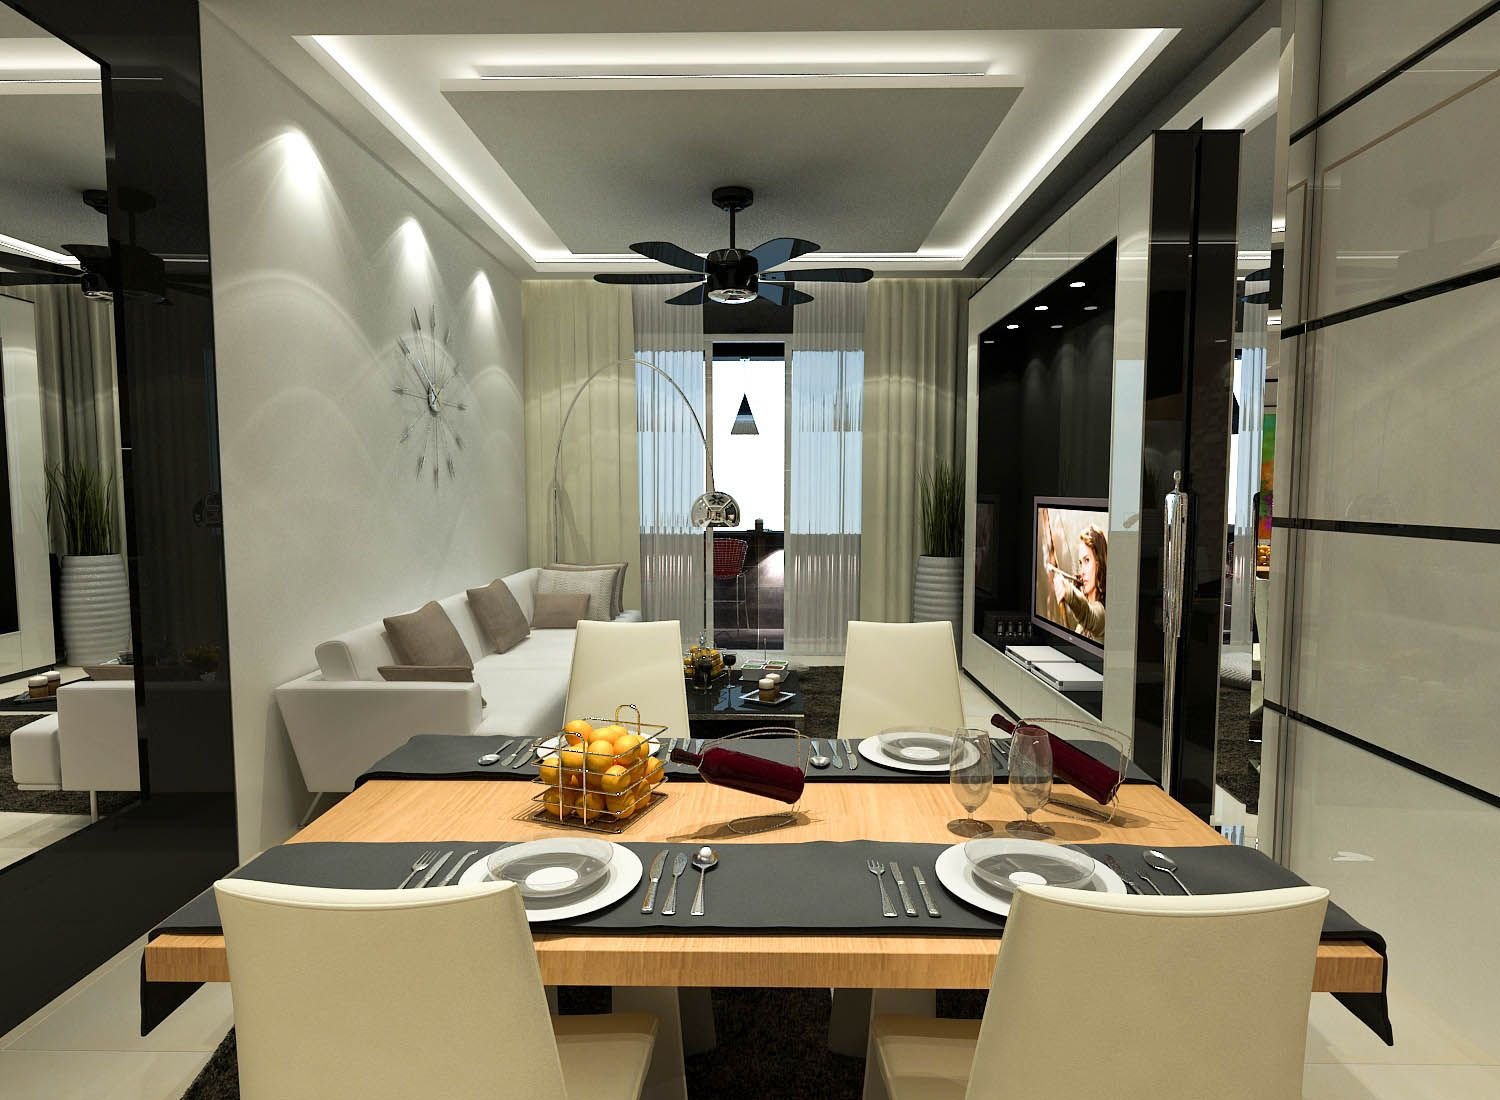 Serviced Apartment In Mutiara Anggerik By Dnito Studio Malaysia